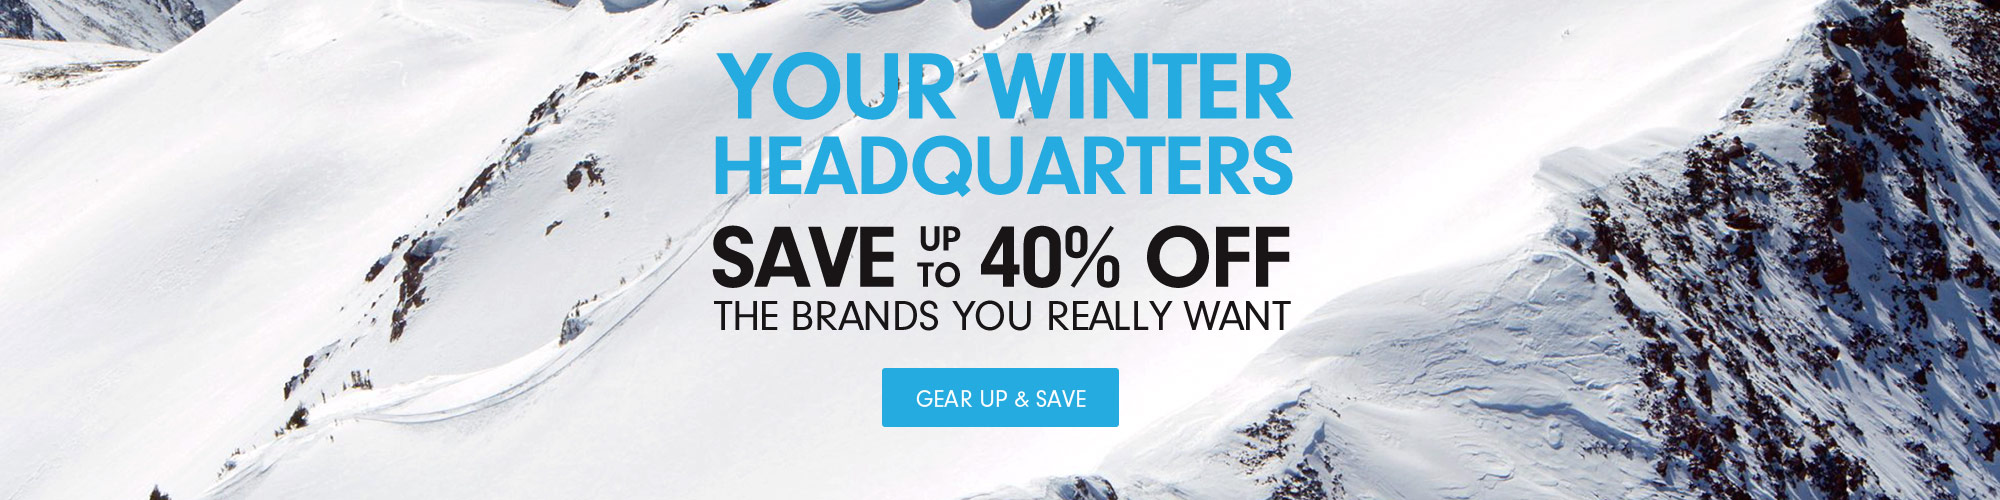 Your Winter Headquarters - Save up to 40% Off